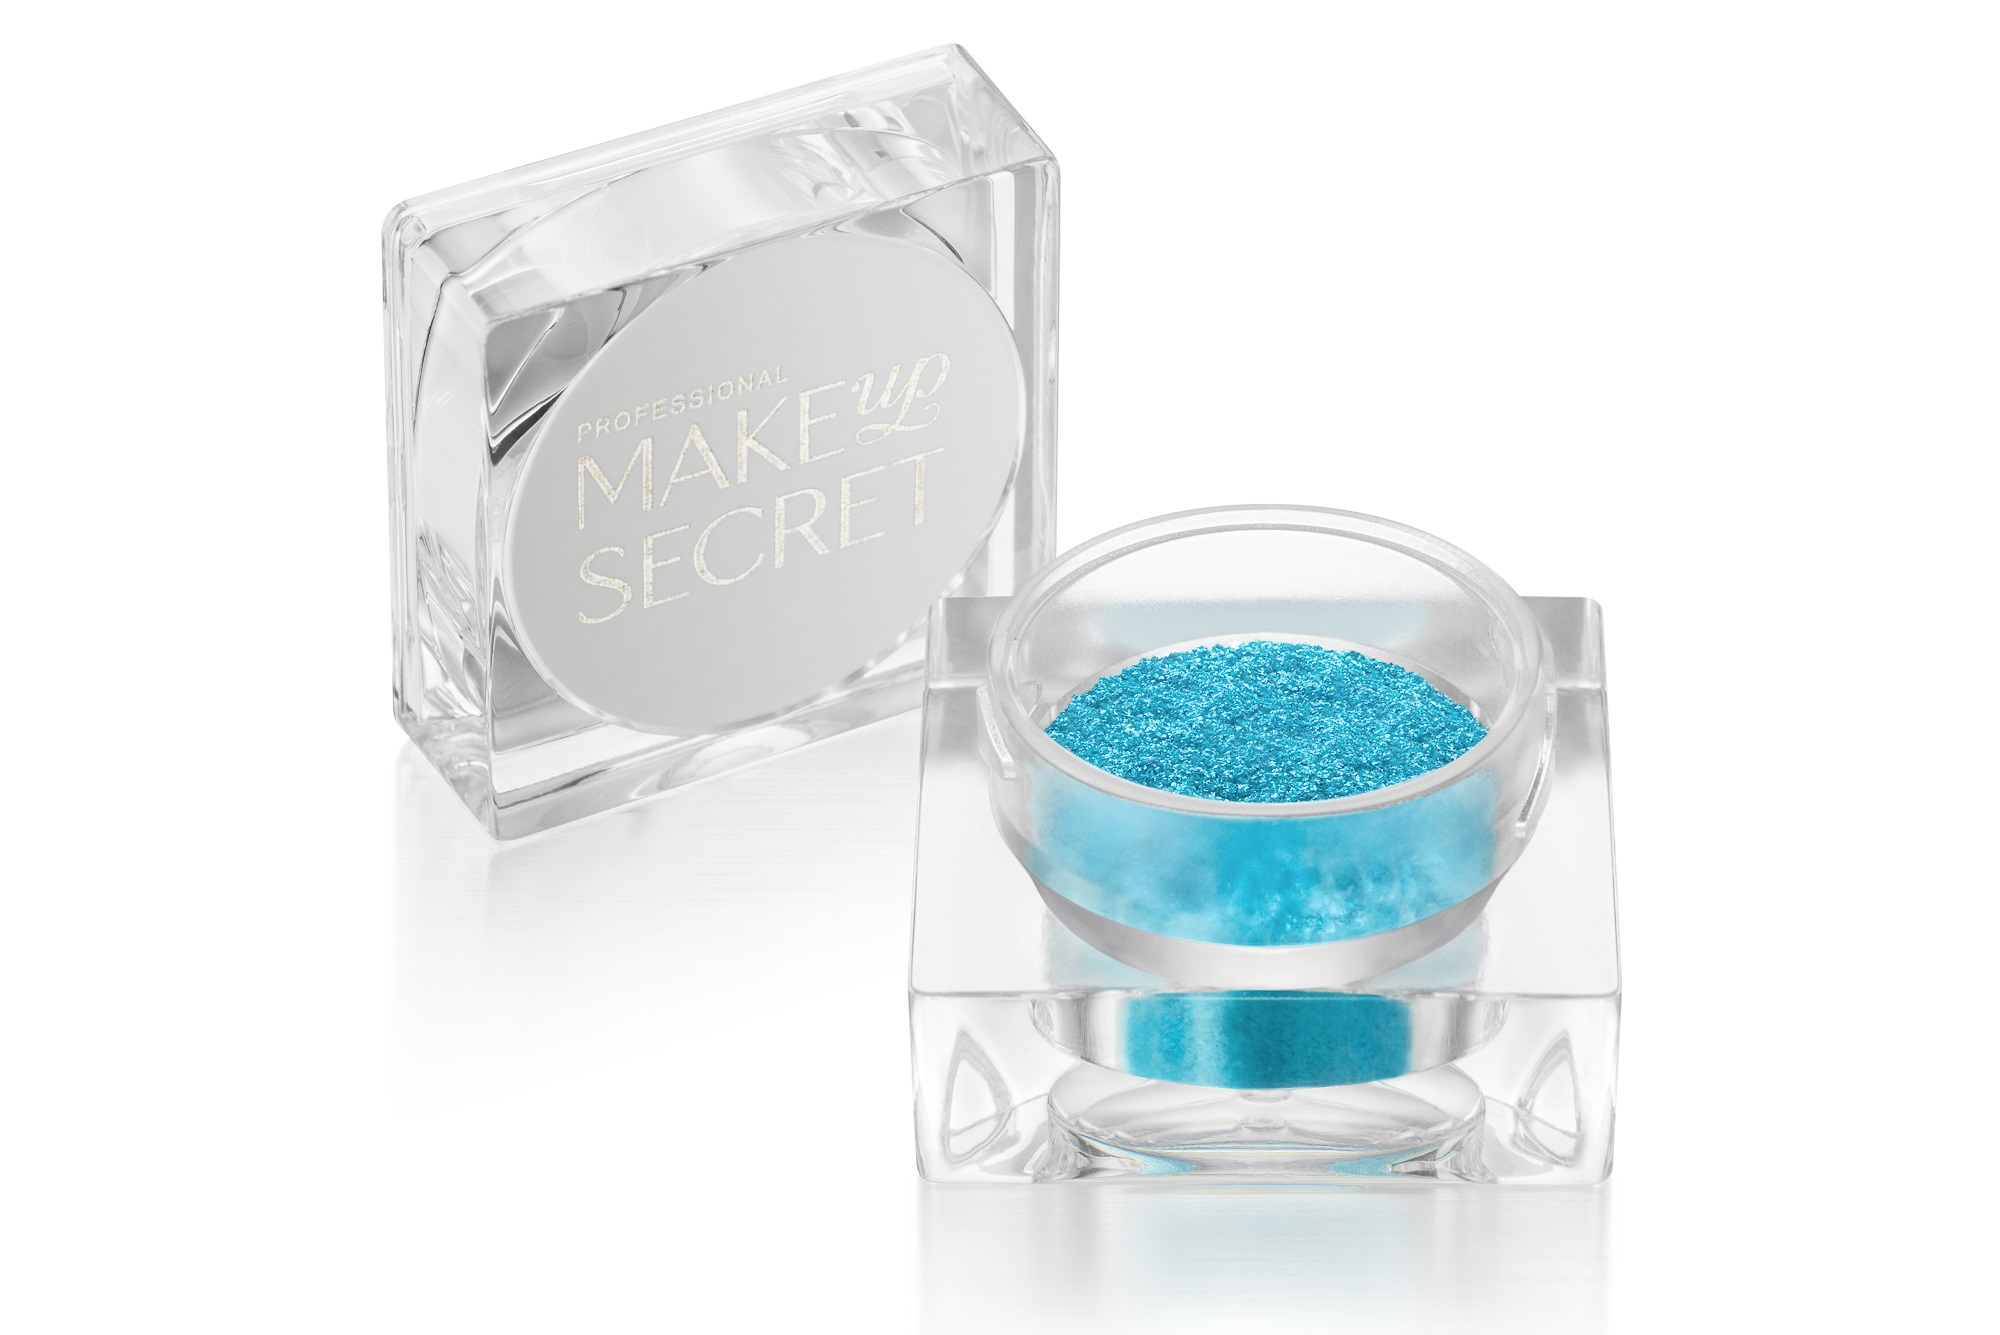 Пигменты Make up Secret MAKEUP EMOTIONS серия Star collection Turquoise star: фото